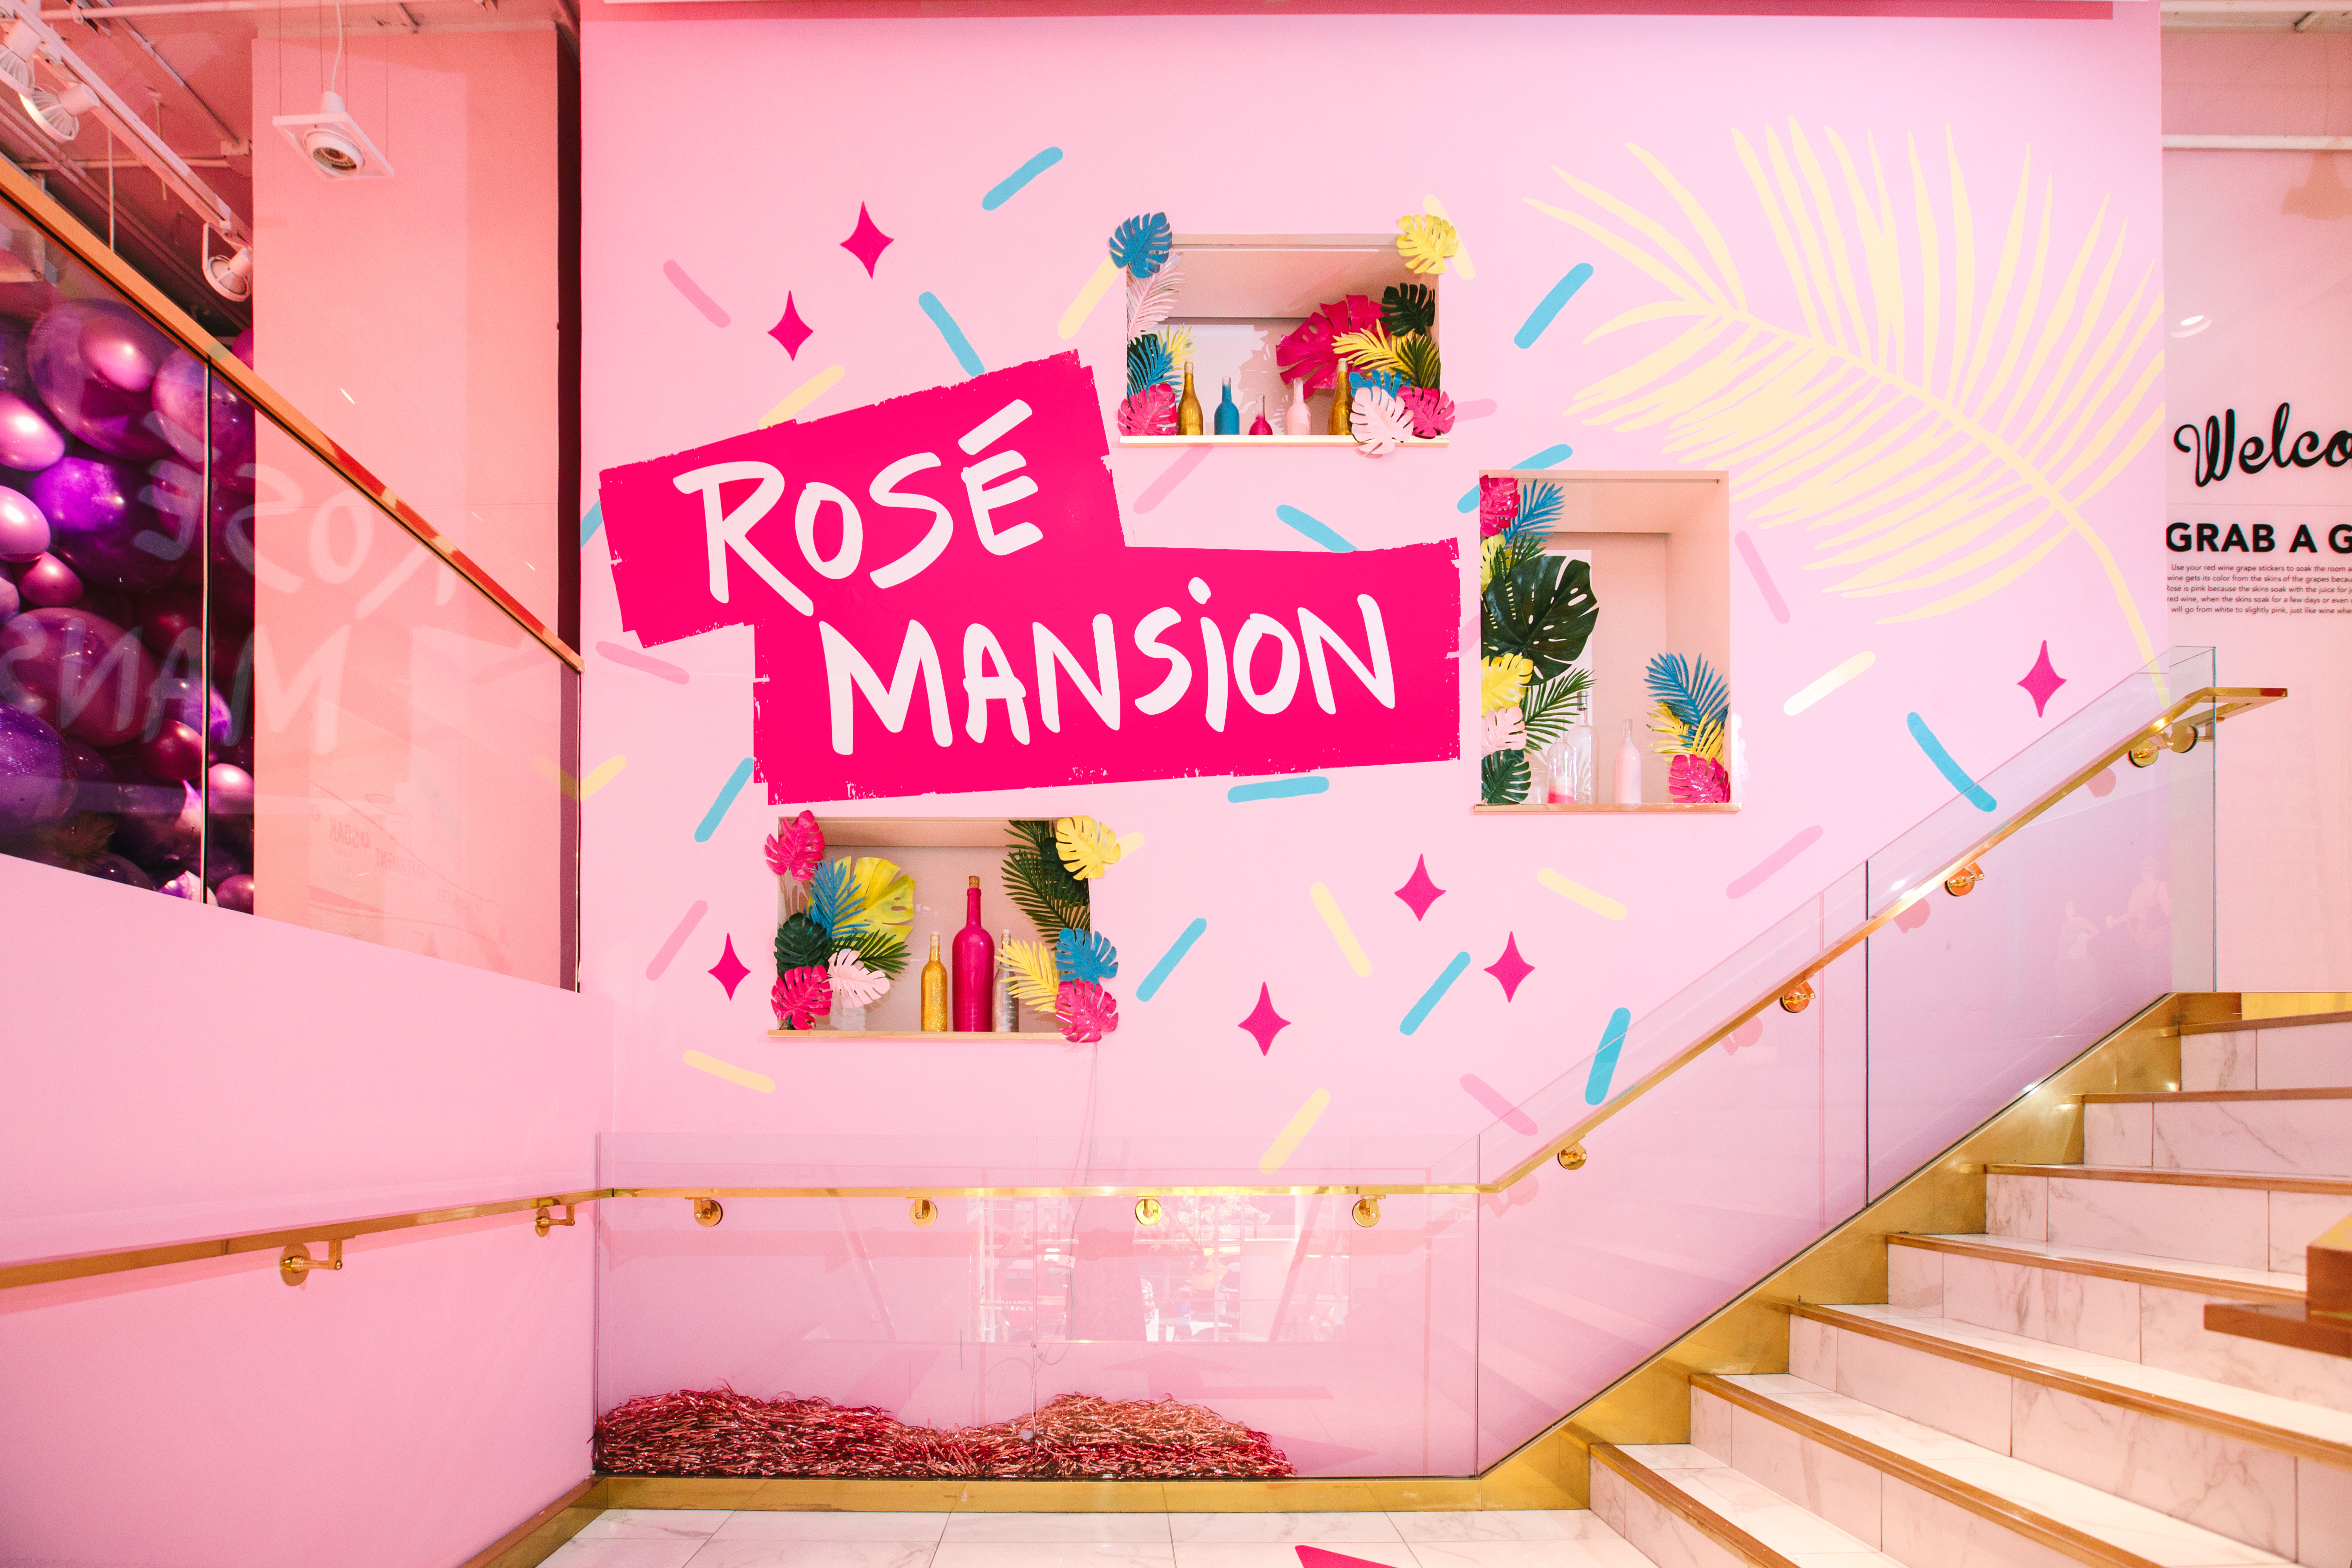 New yorks rosé mansion is exactly the dystopian instagram trap you